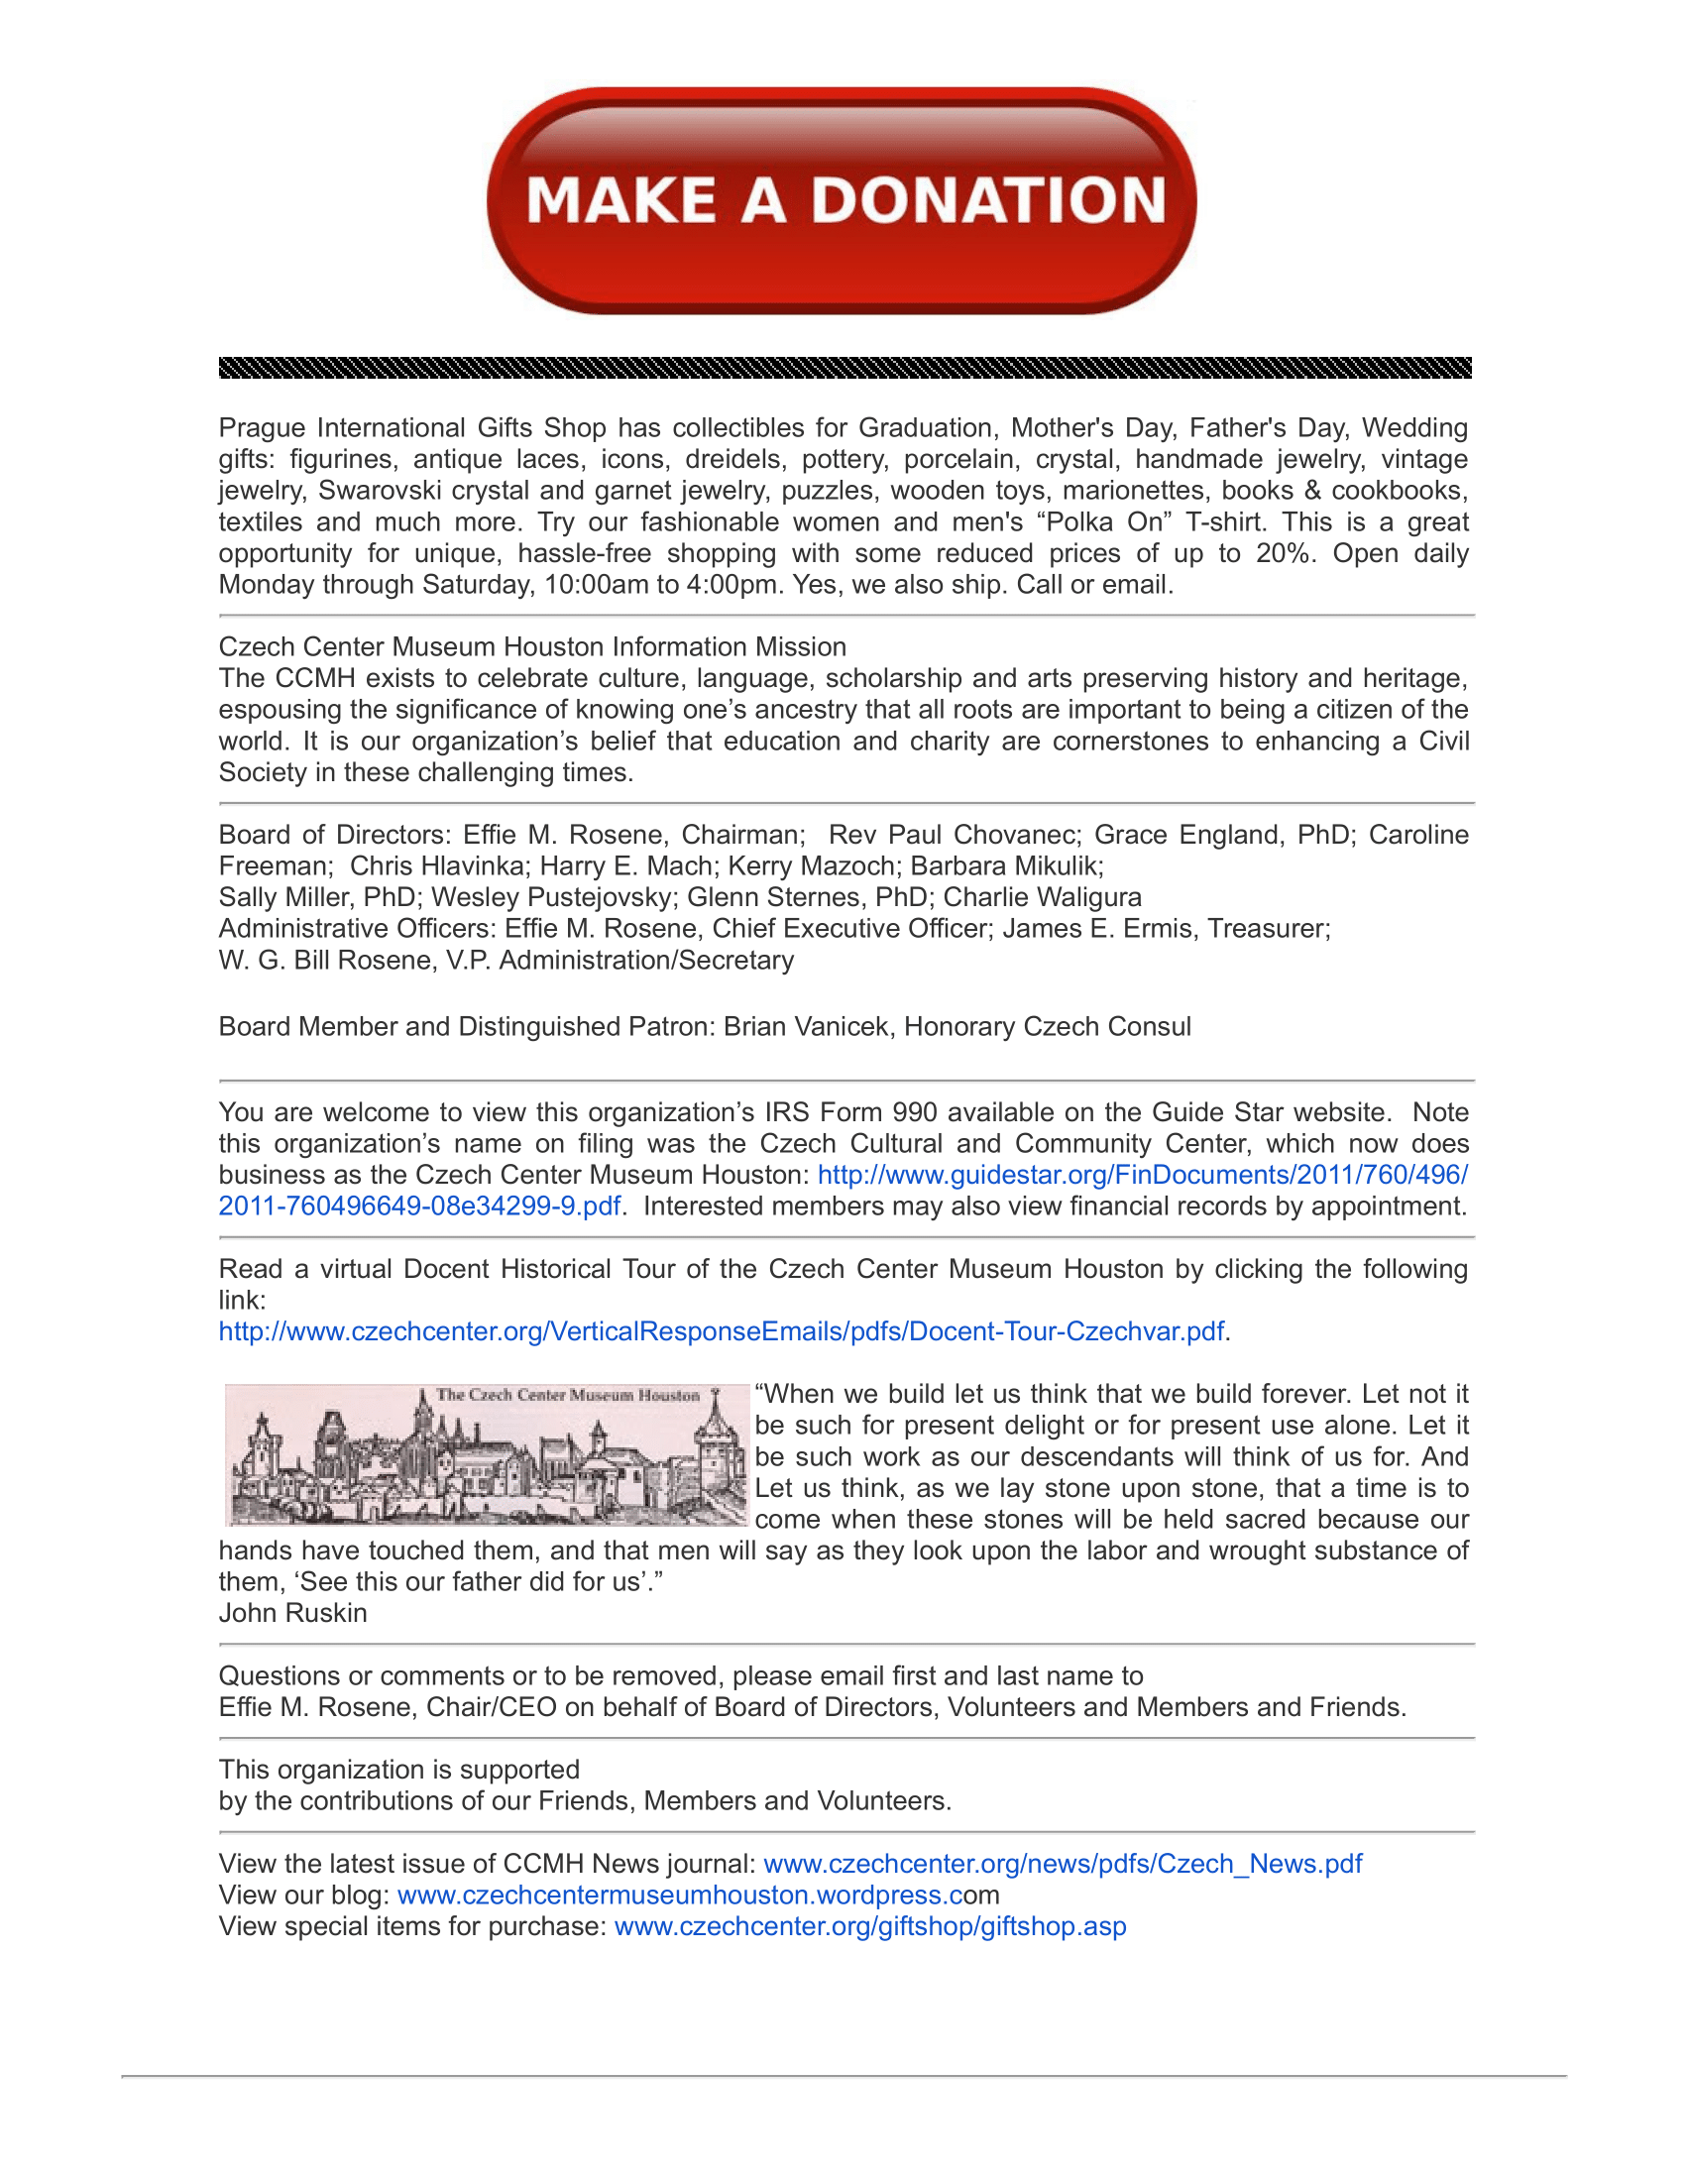 Czech Center Museum Houston Mail - CCMH February Newsletter-10.png